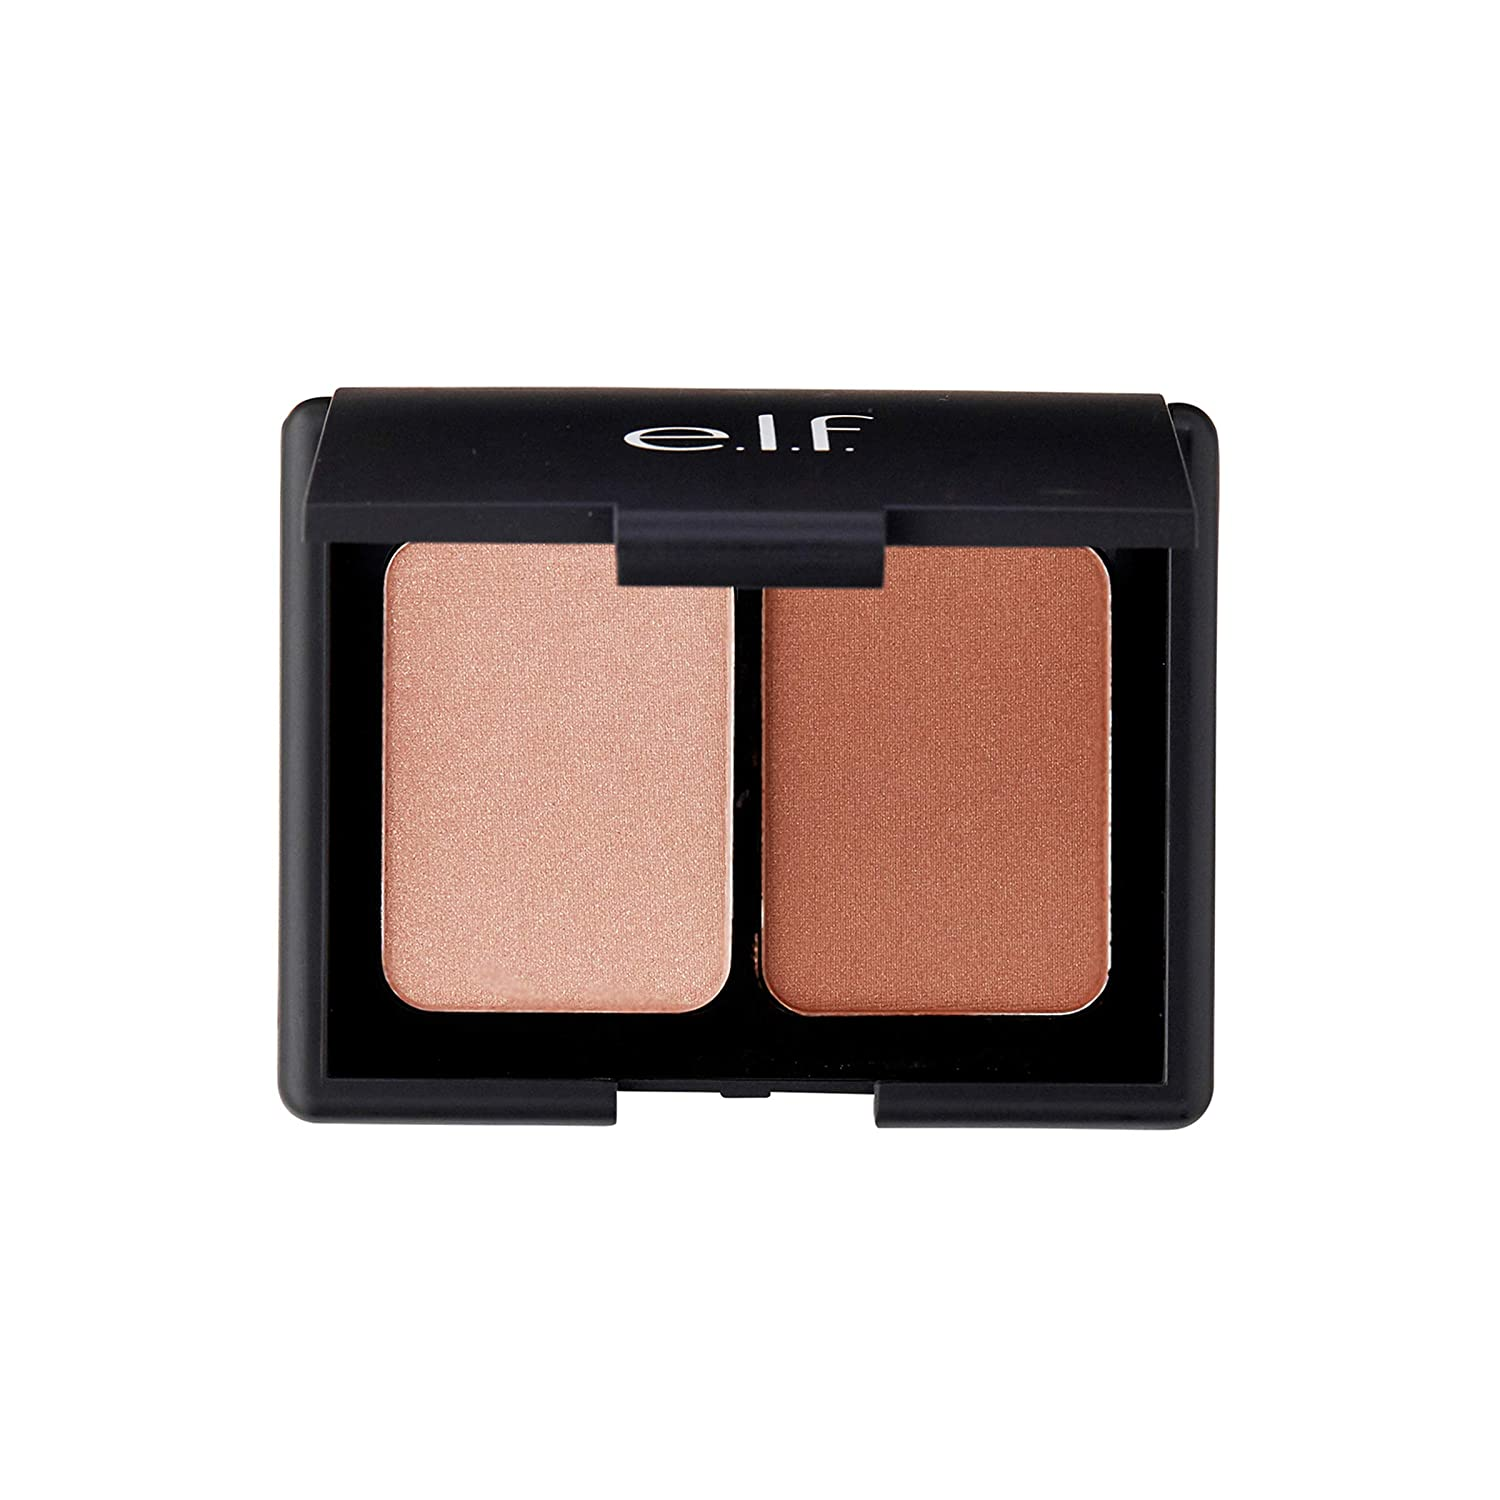 best budget and cheap blush and bronzer e.l.f. Cosmetics Contouring Blush & Bronzing Powder, Two Matte Shades Perfectly Contour Skin, Fiji